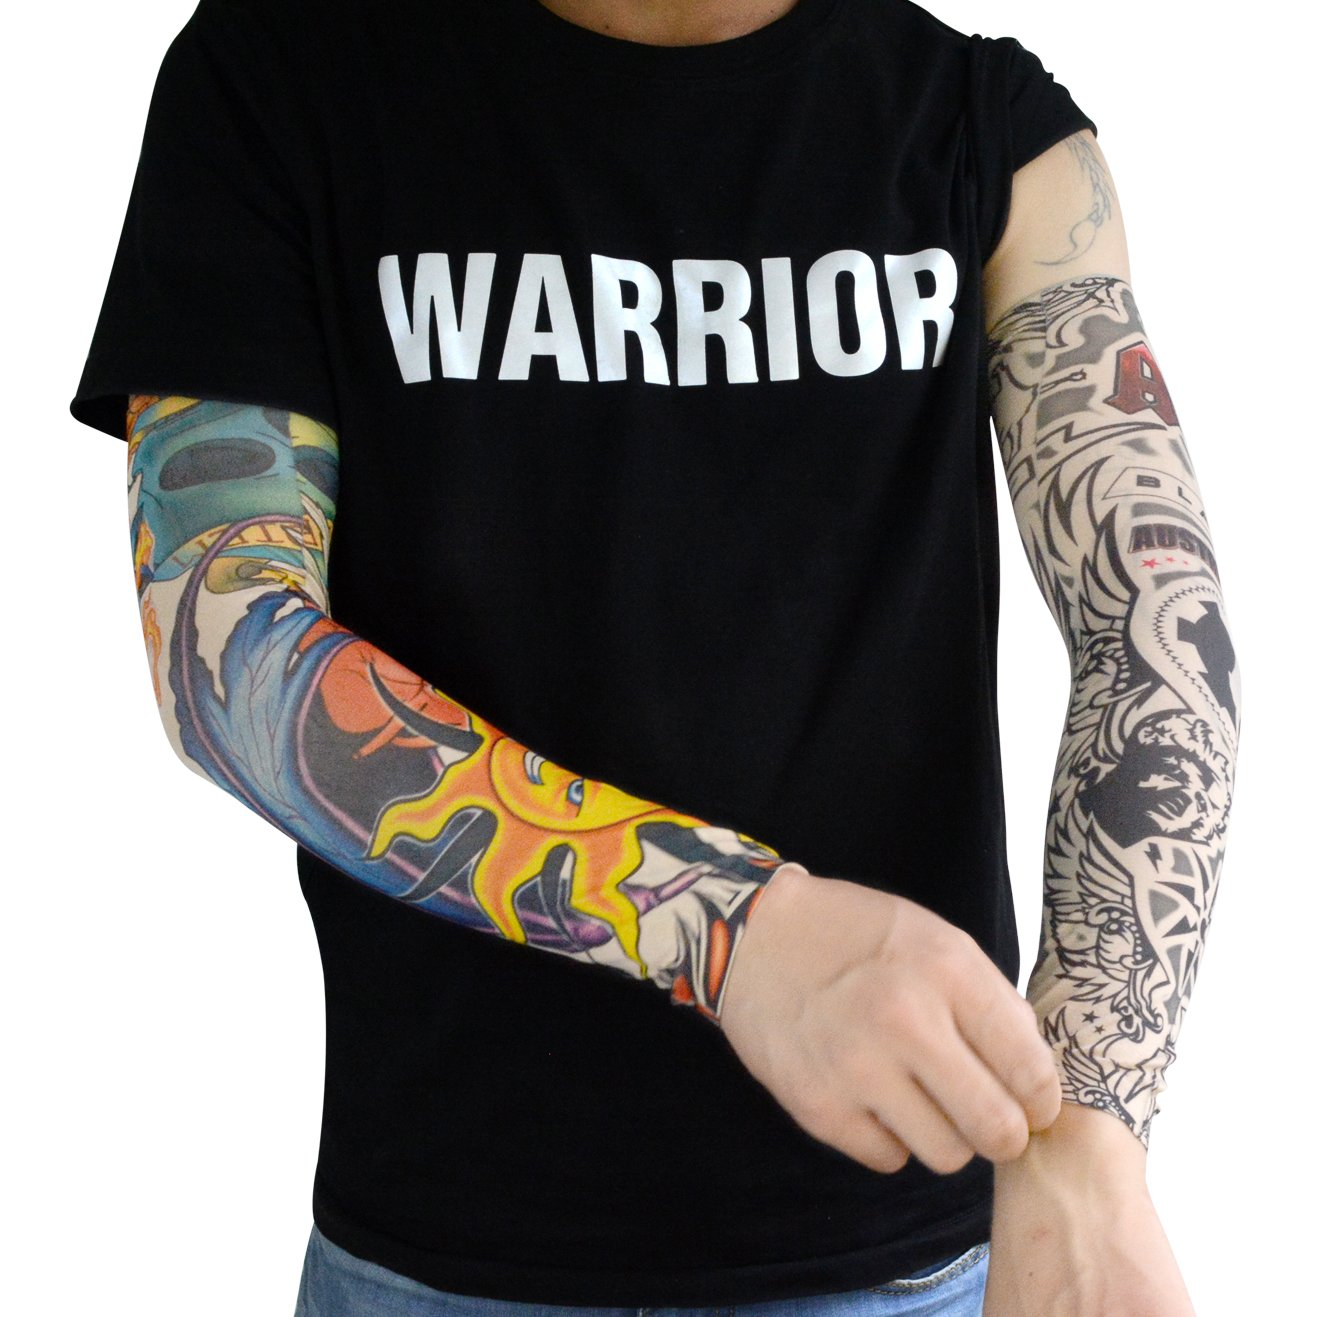 HOVEOX 20pcs Temporary Tattoo Arm Sleeves Arts Fake Slip on Arm Sunscreen Sleeves Body Art Stockings Protector -Designs Tribal, Tiger, Dragon, Skull, and Etc Unisex Stretchable Cosplay Accessories by HOVEOX (Image #4)